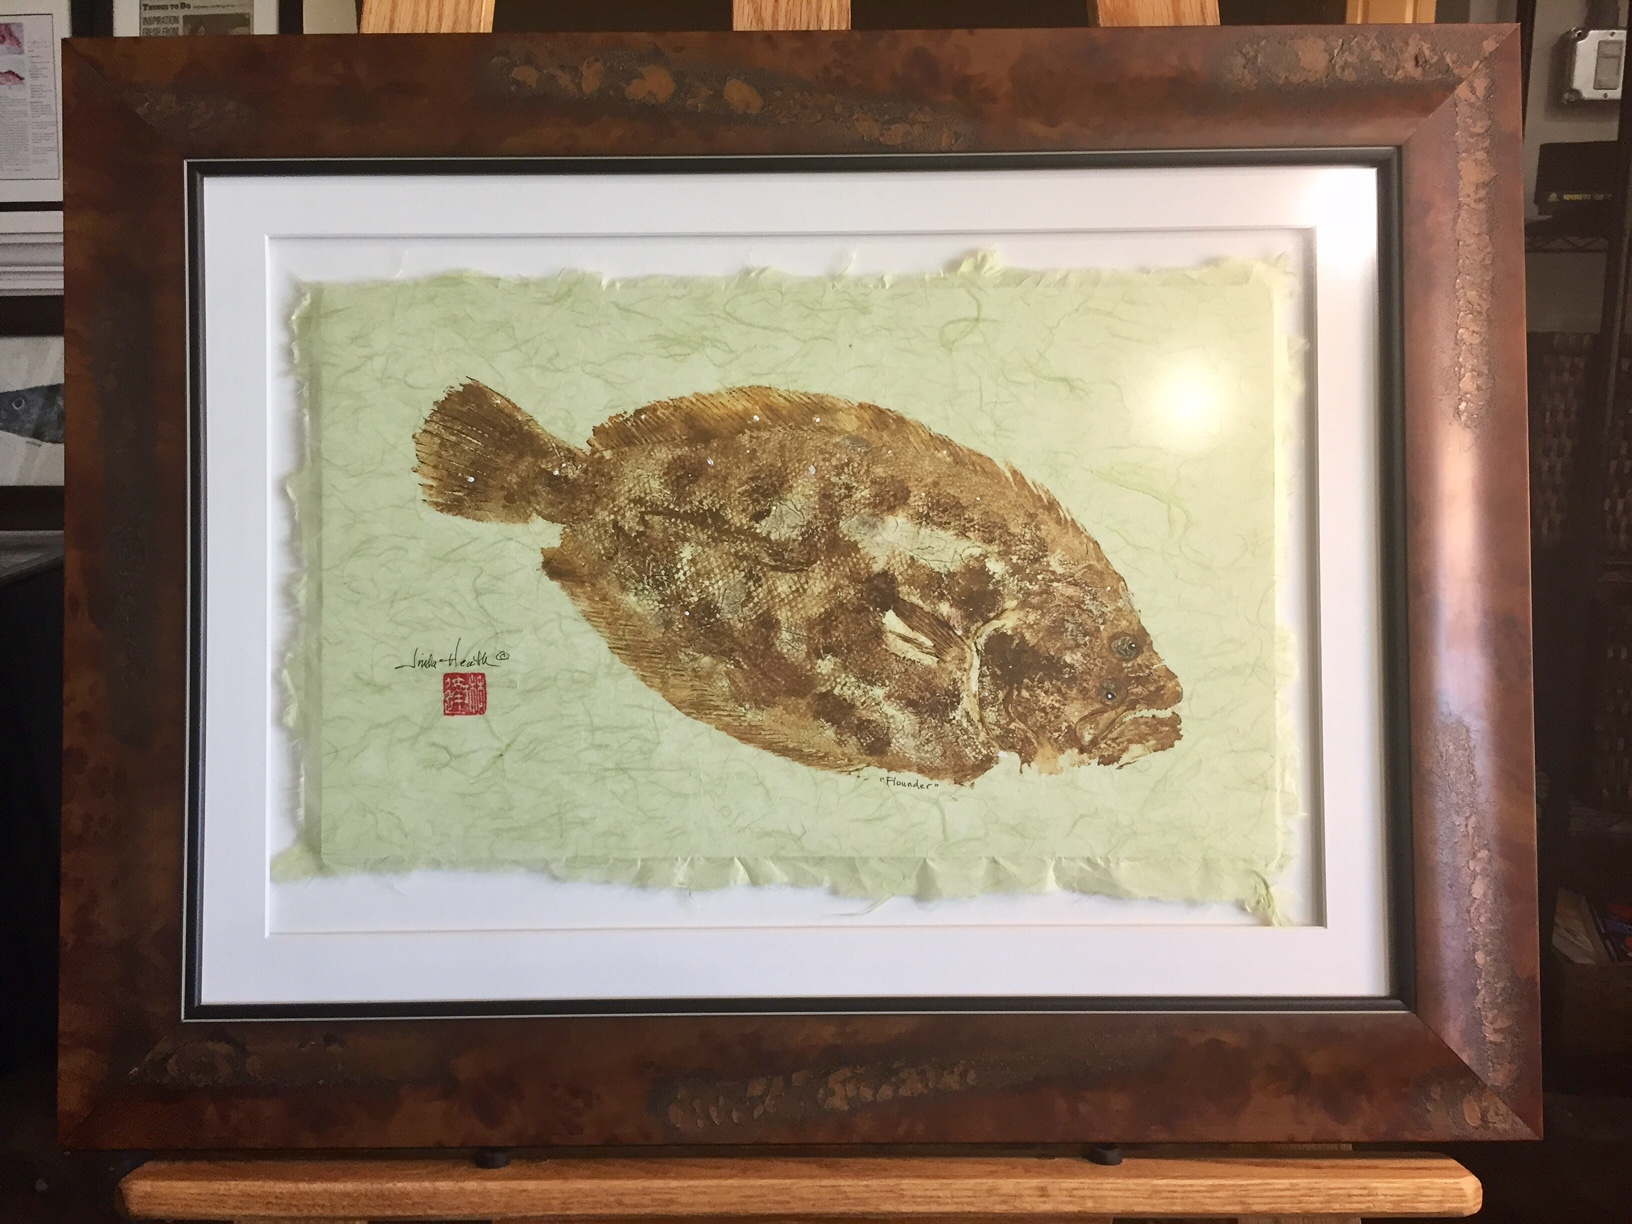 Original Flounder by Linda Heath